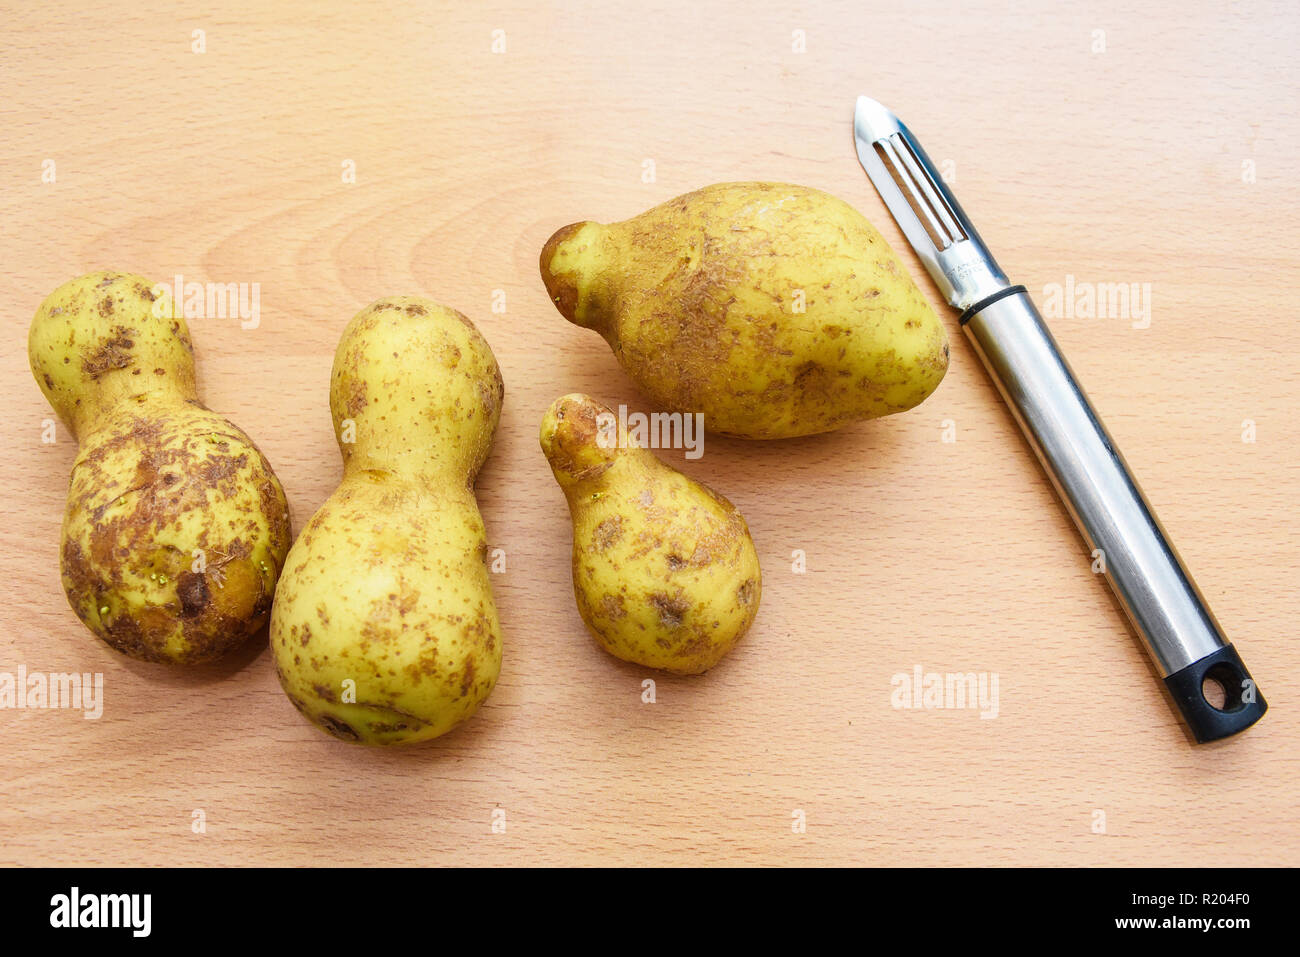 Odd shaped potatoes. Non standard shape food. Wonky veg. Imperfect potatoes.  Imperfect substandard produce on wood work surface. Space for copy - Stock Image